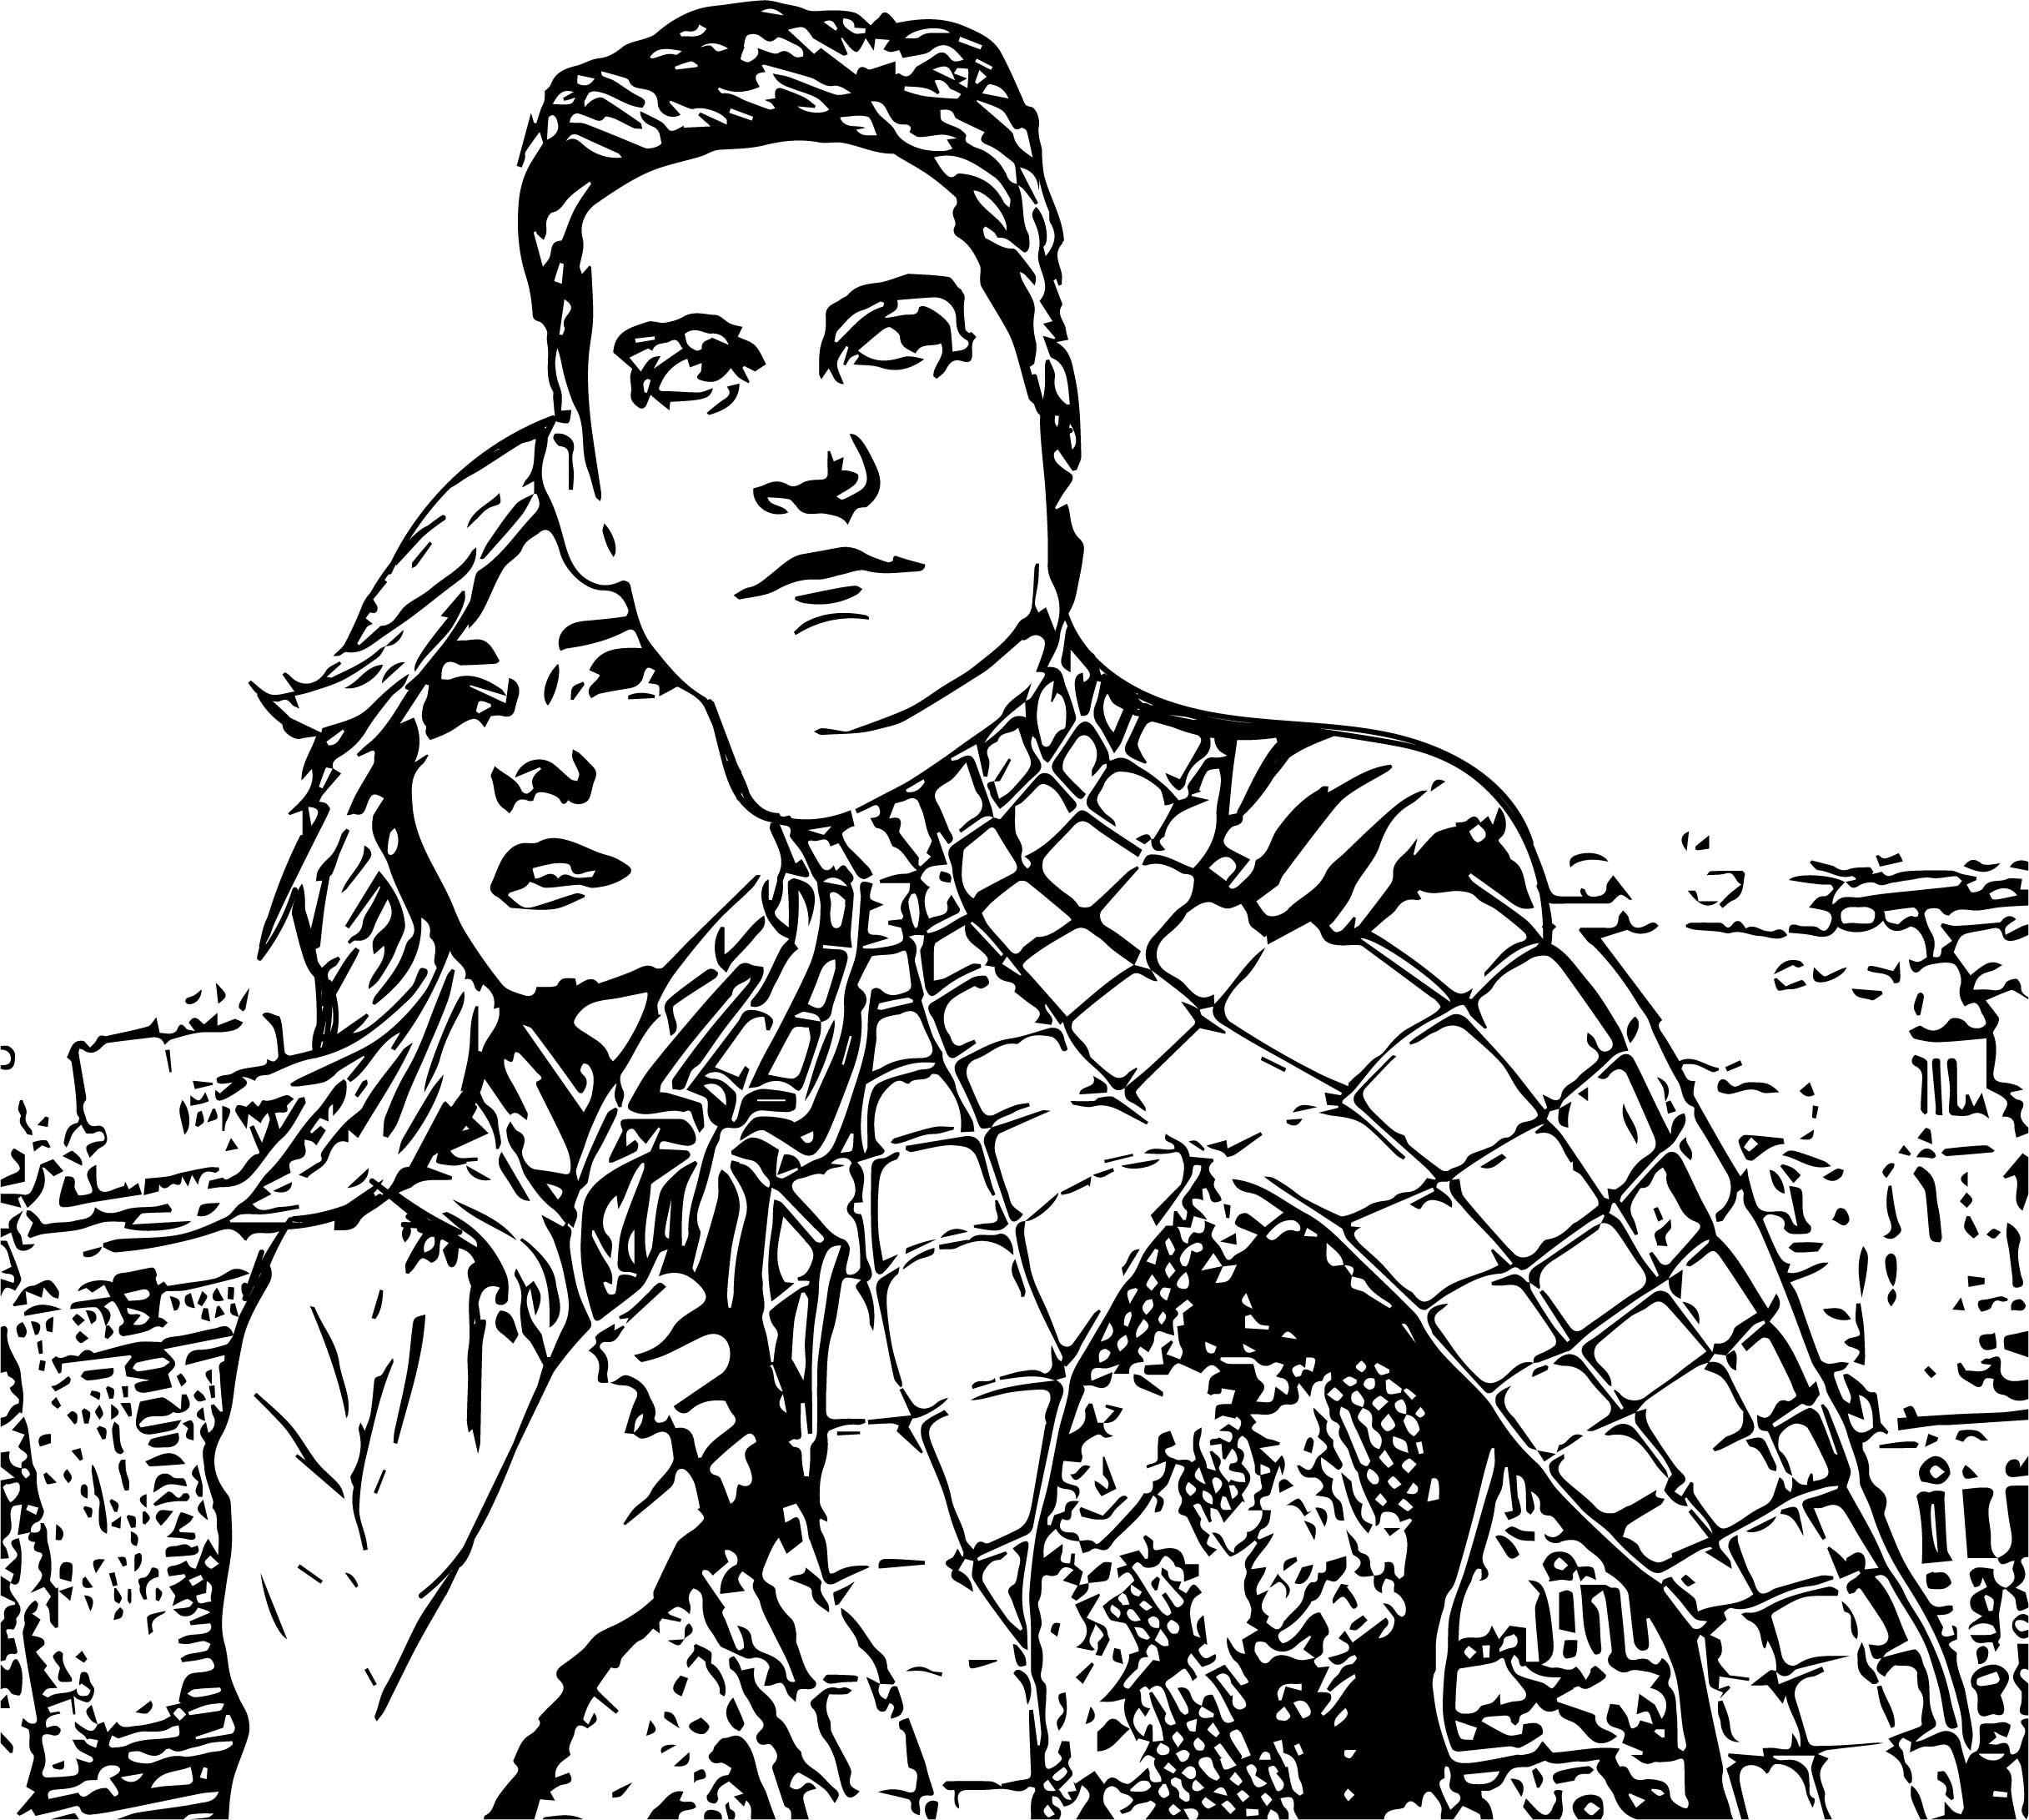 Spider Man In Movie Coloring Page | Wecoloringpage.com